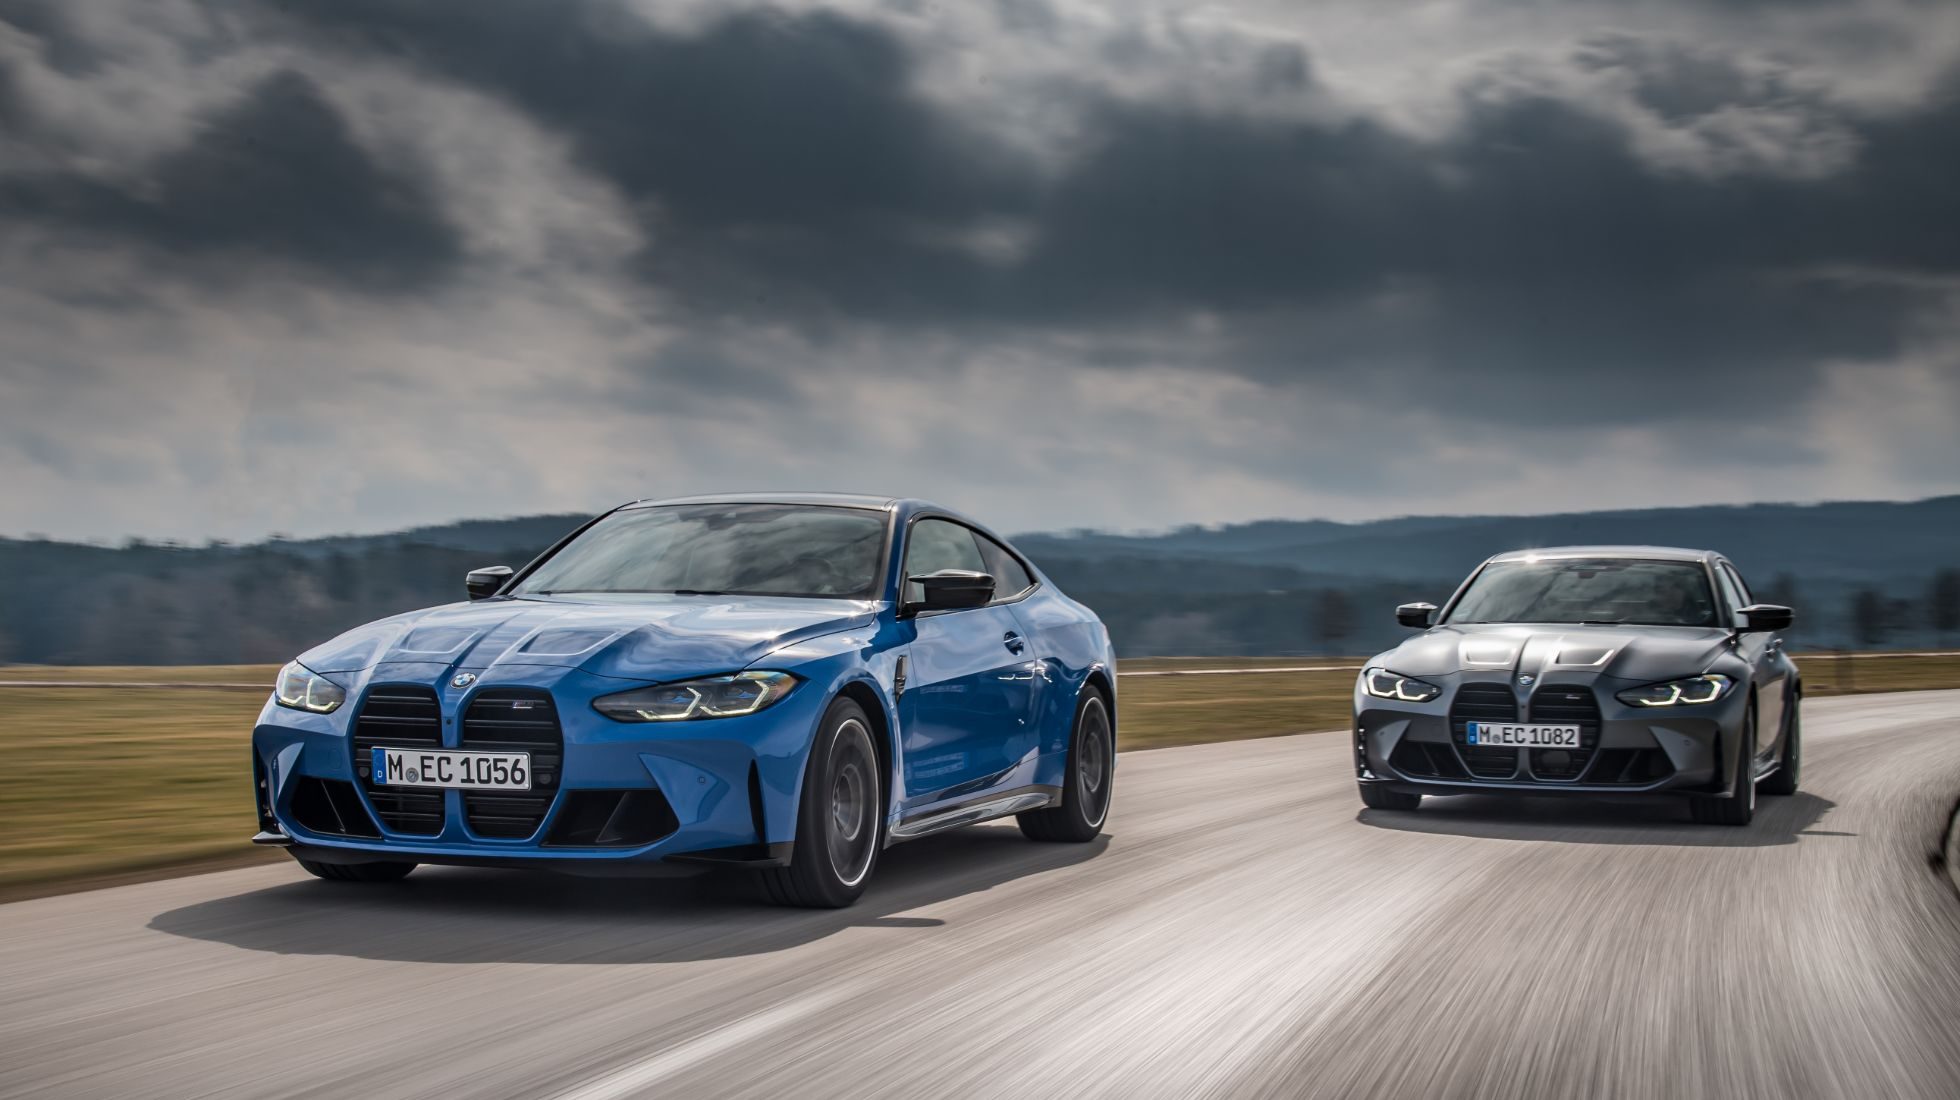 BMW M3 and M4 Competition get all-wheel drive traction